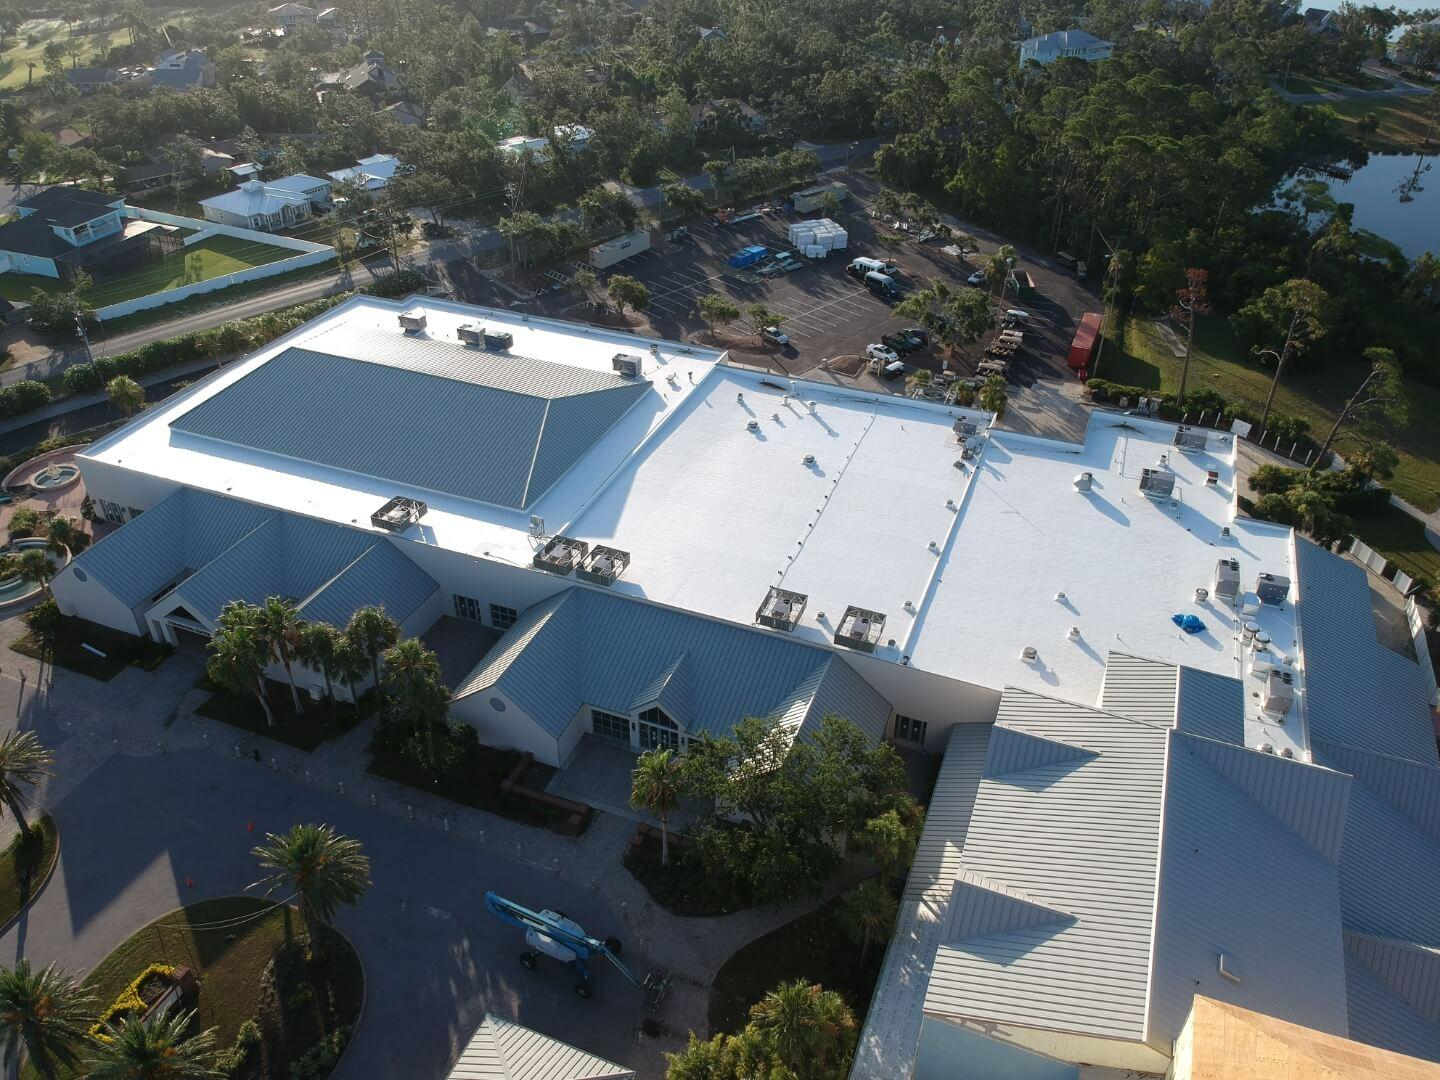 commercial roofer dallas tx dfw tpo flat epdm roof repair free inspection best companies near me services dallas commercial roofing company image1